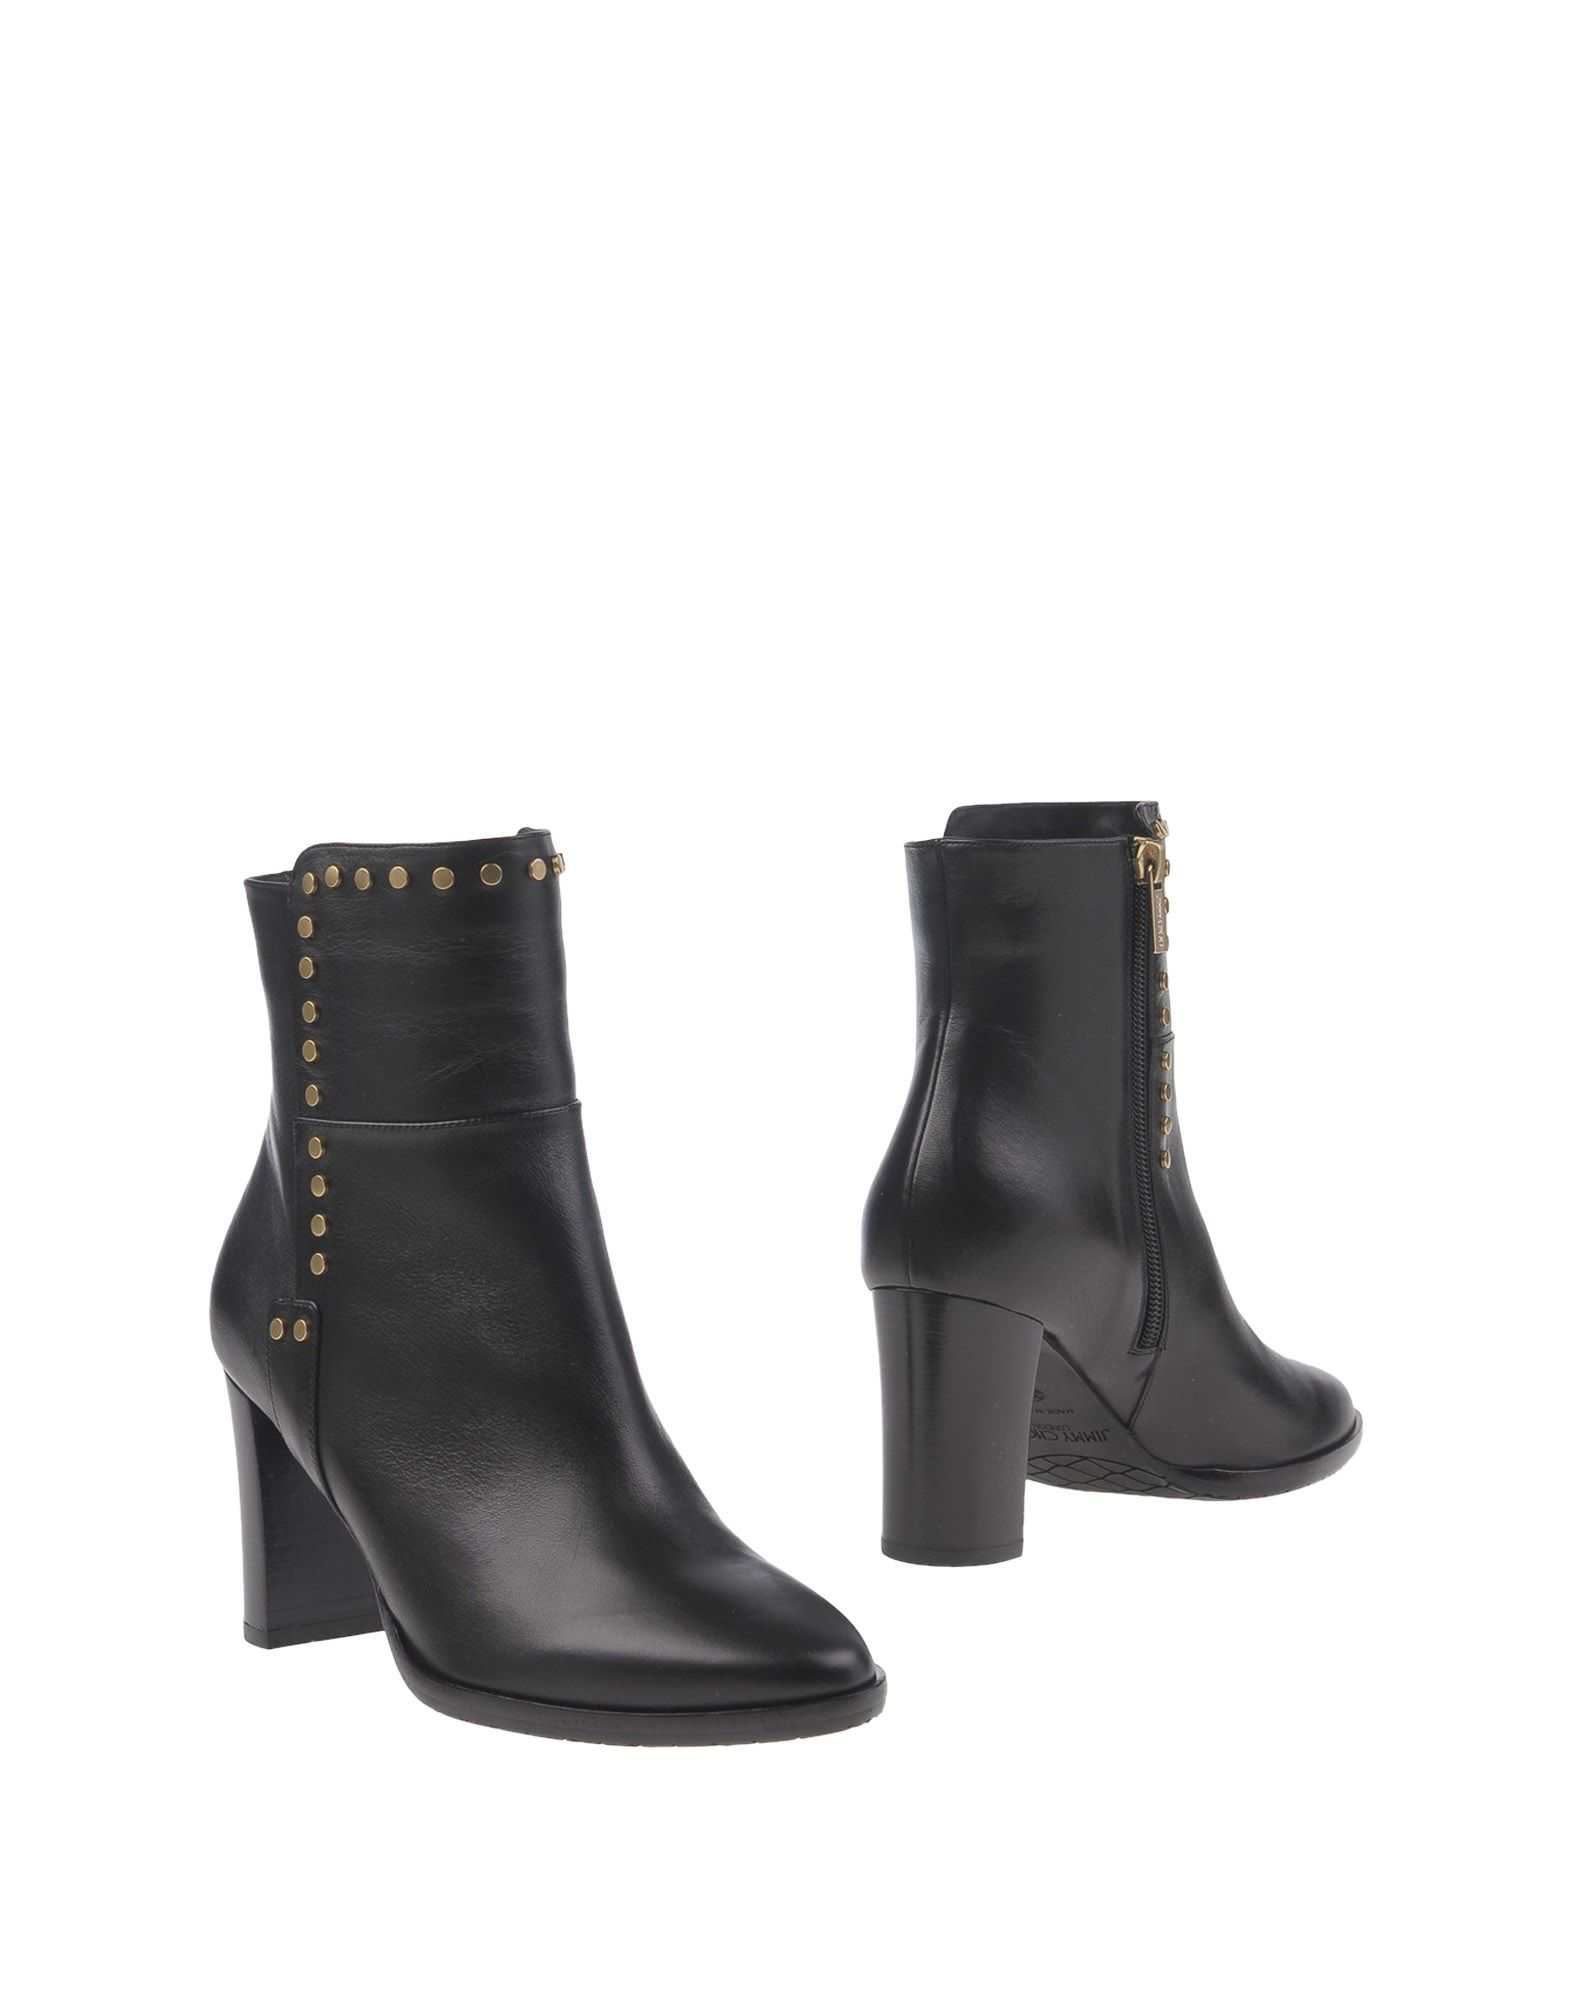 Bottine Jimmy Choo Femme - Bottines Jimmy Choo Noir Meilleur modèle de vente